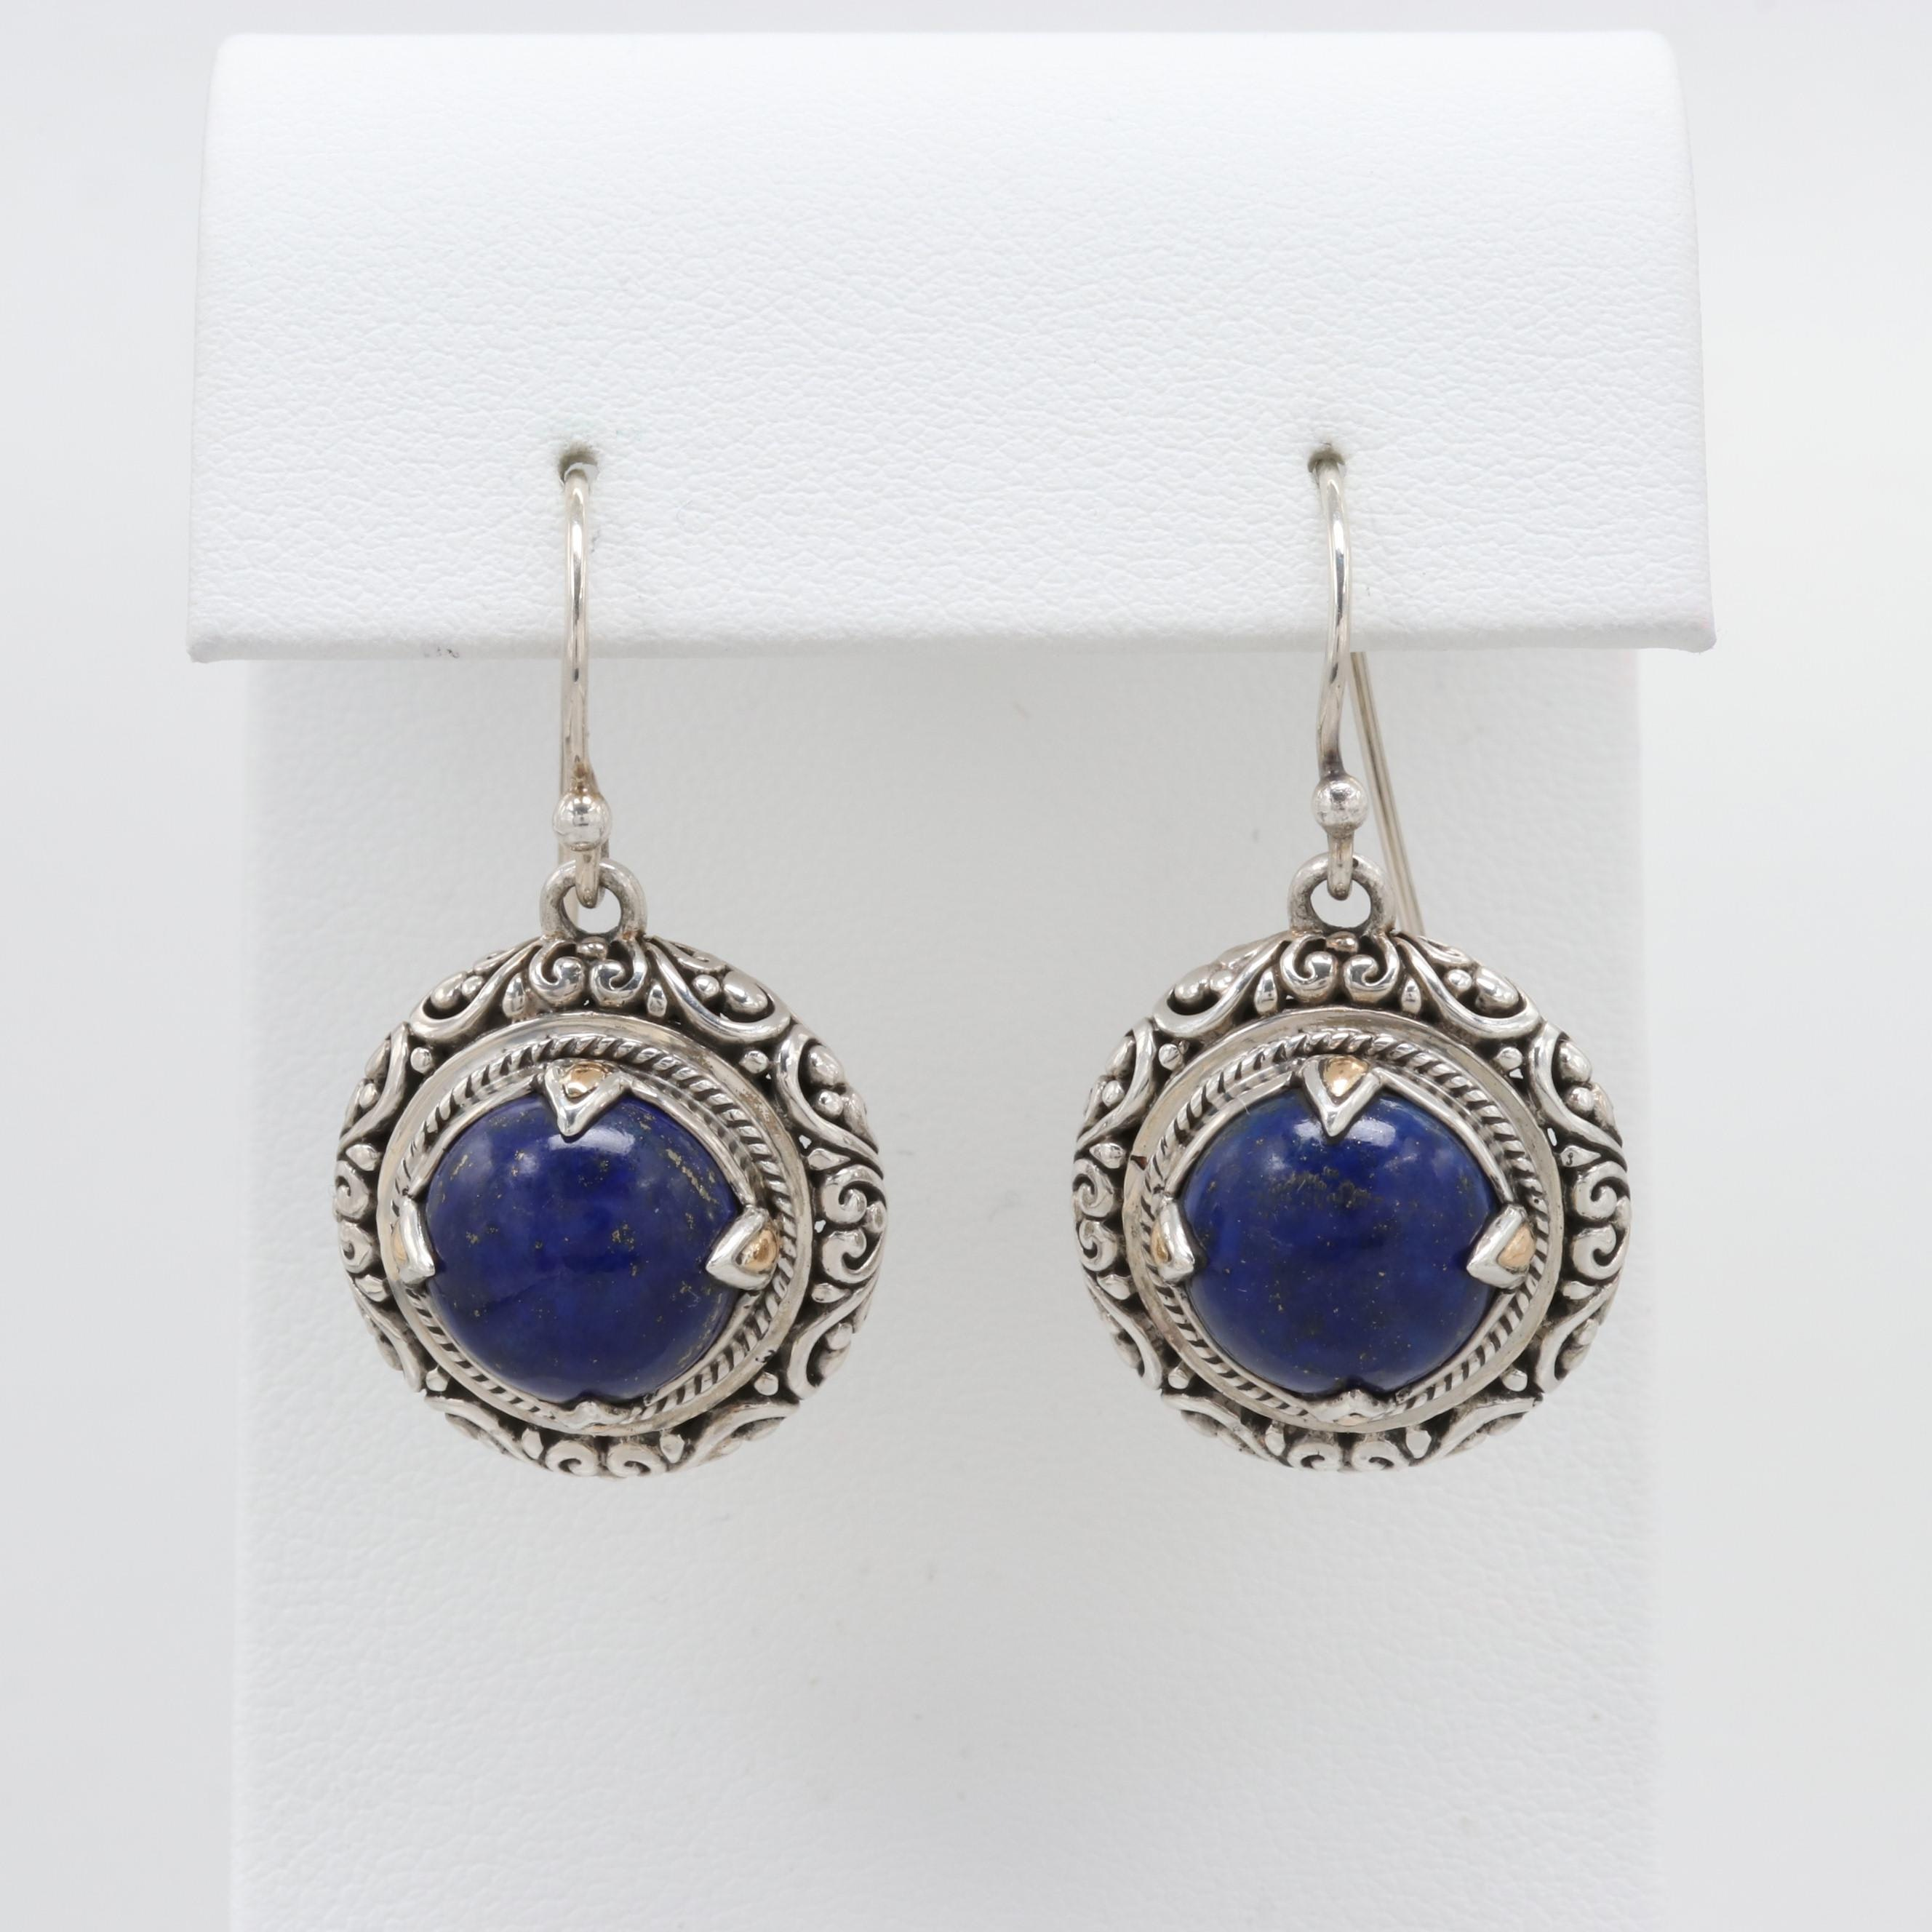 Robert Manse Sterling Silver Lapis Lazuli Earrings with 18K Yellow Gold Accents